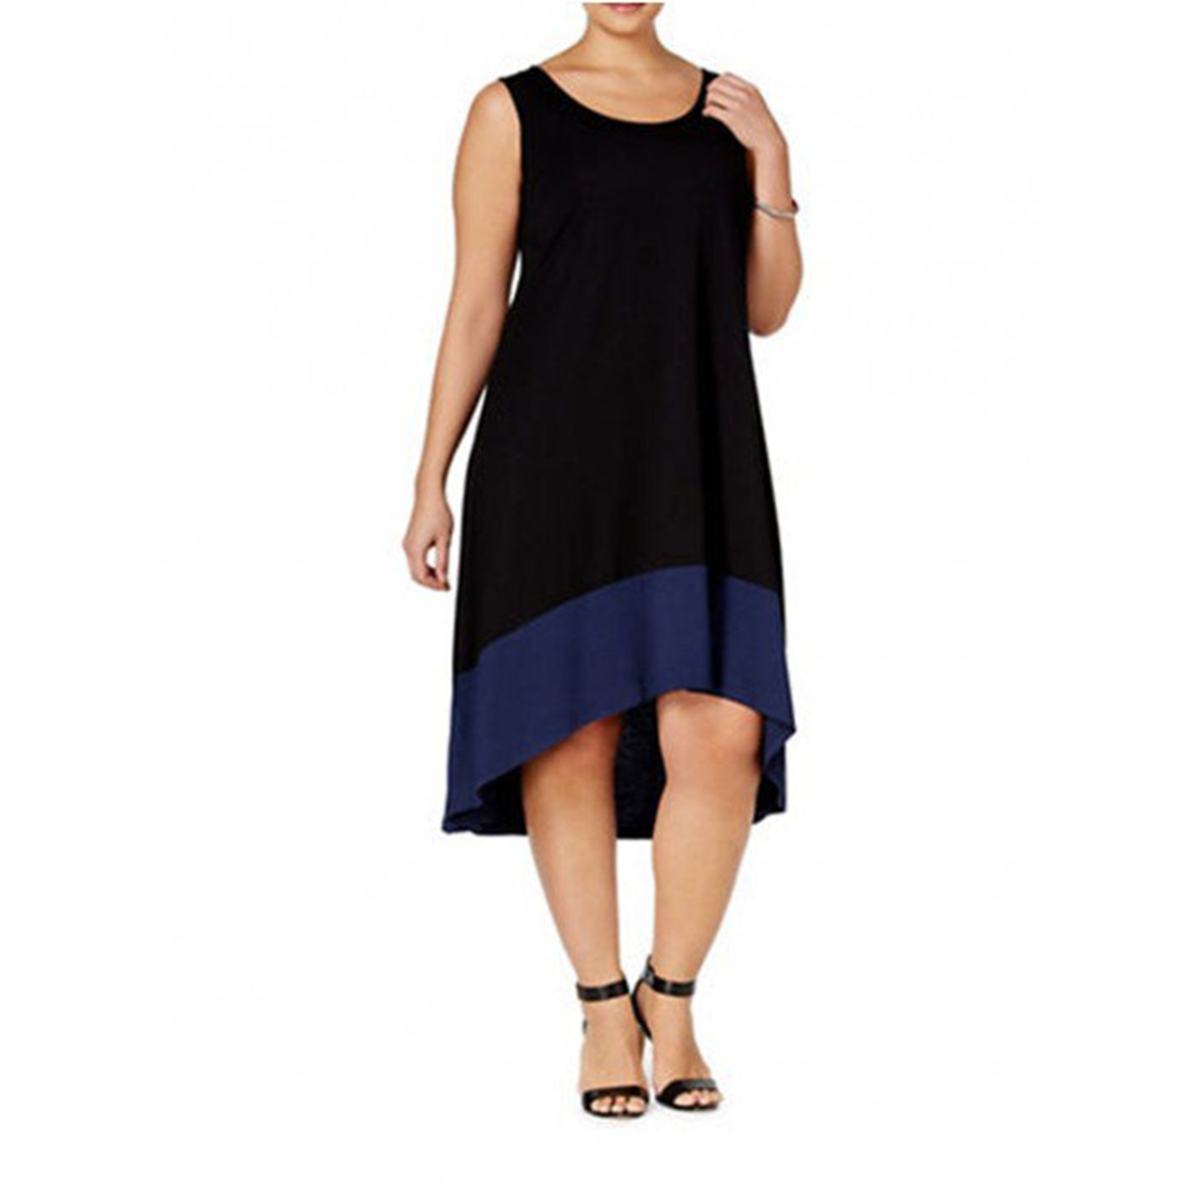 sleeveless dress with A-line silhouette, colorblocking and high-low hem -- the stylish hemline emphasizes the legs